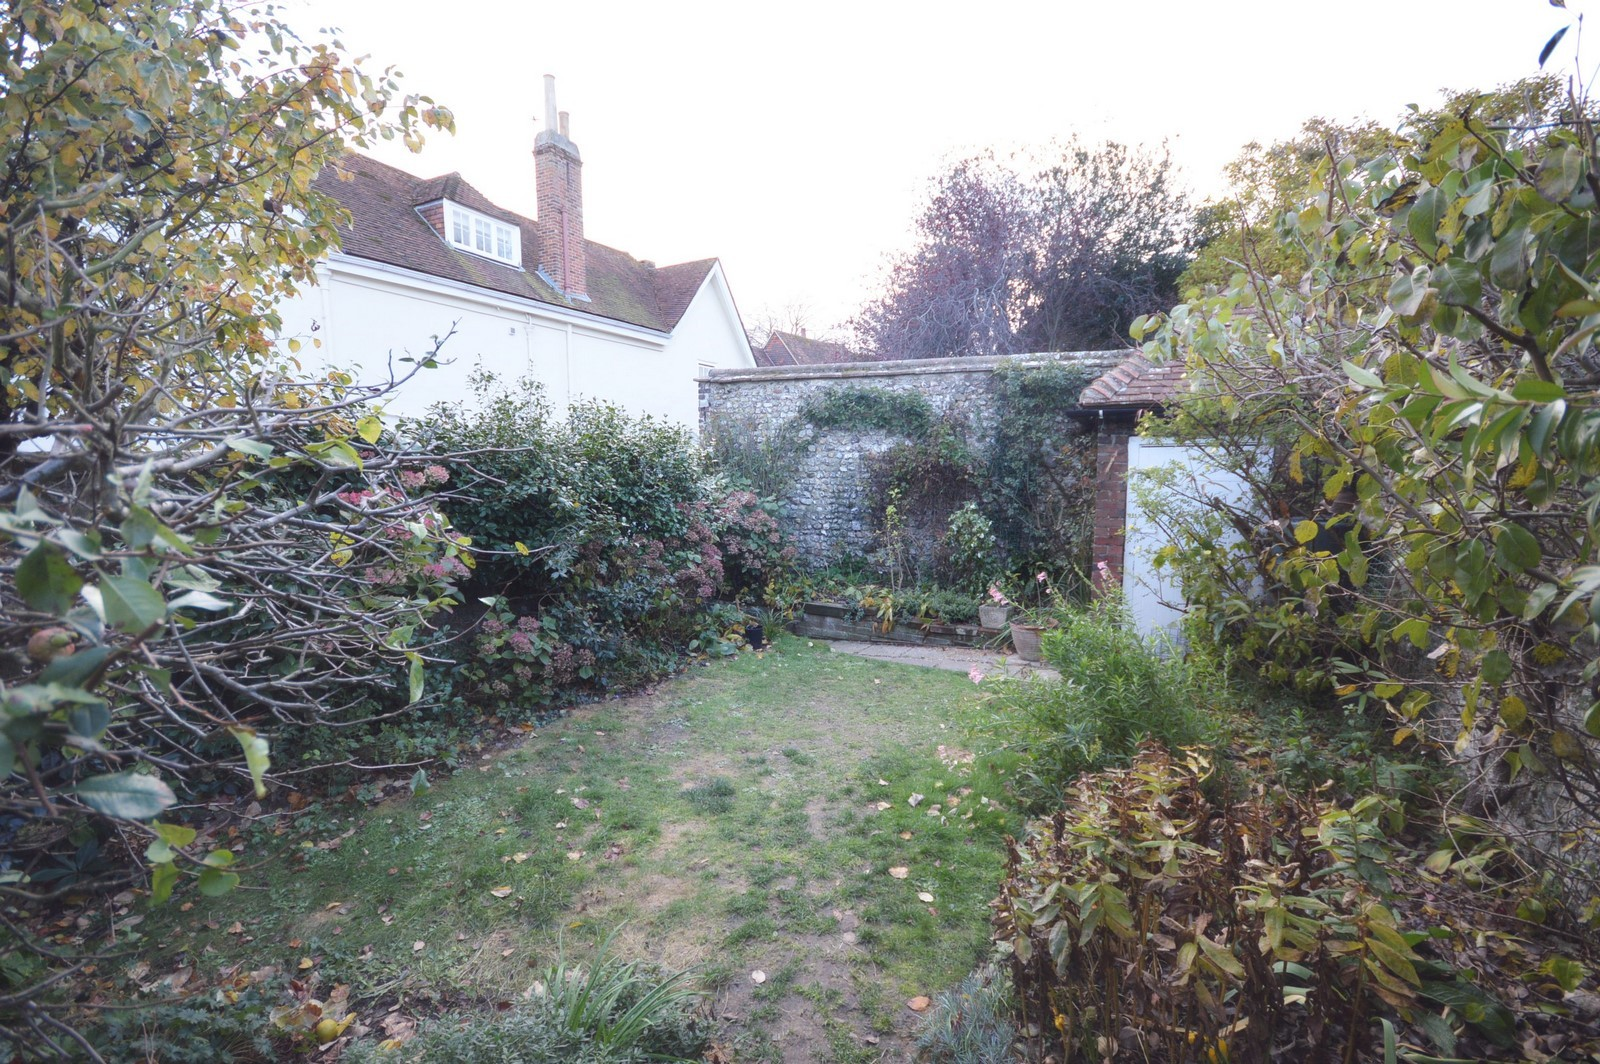 Garden House to rent in Chichester City Centre